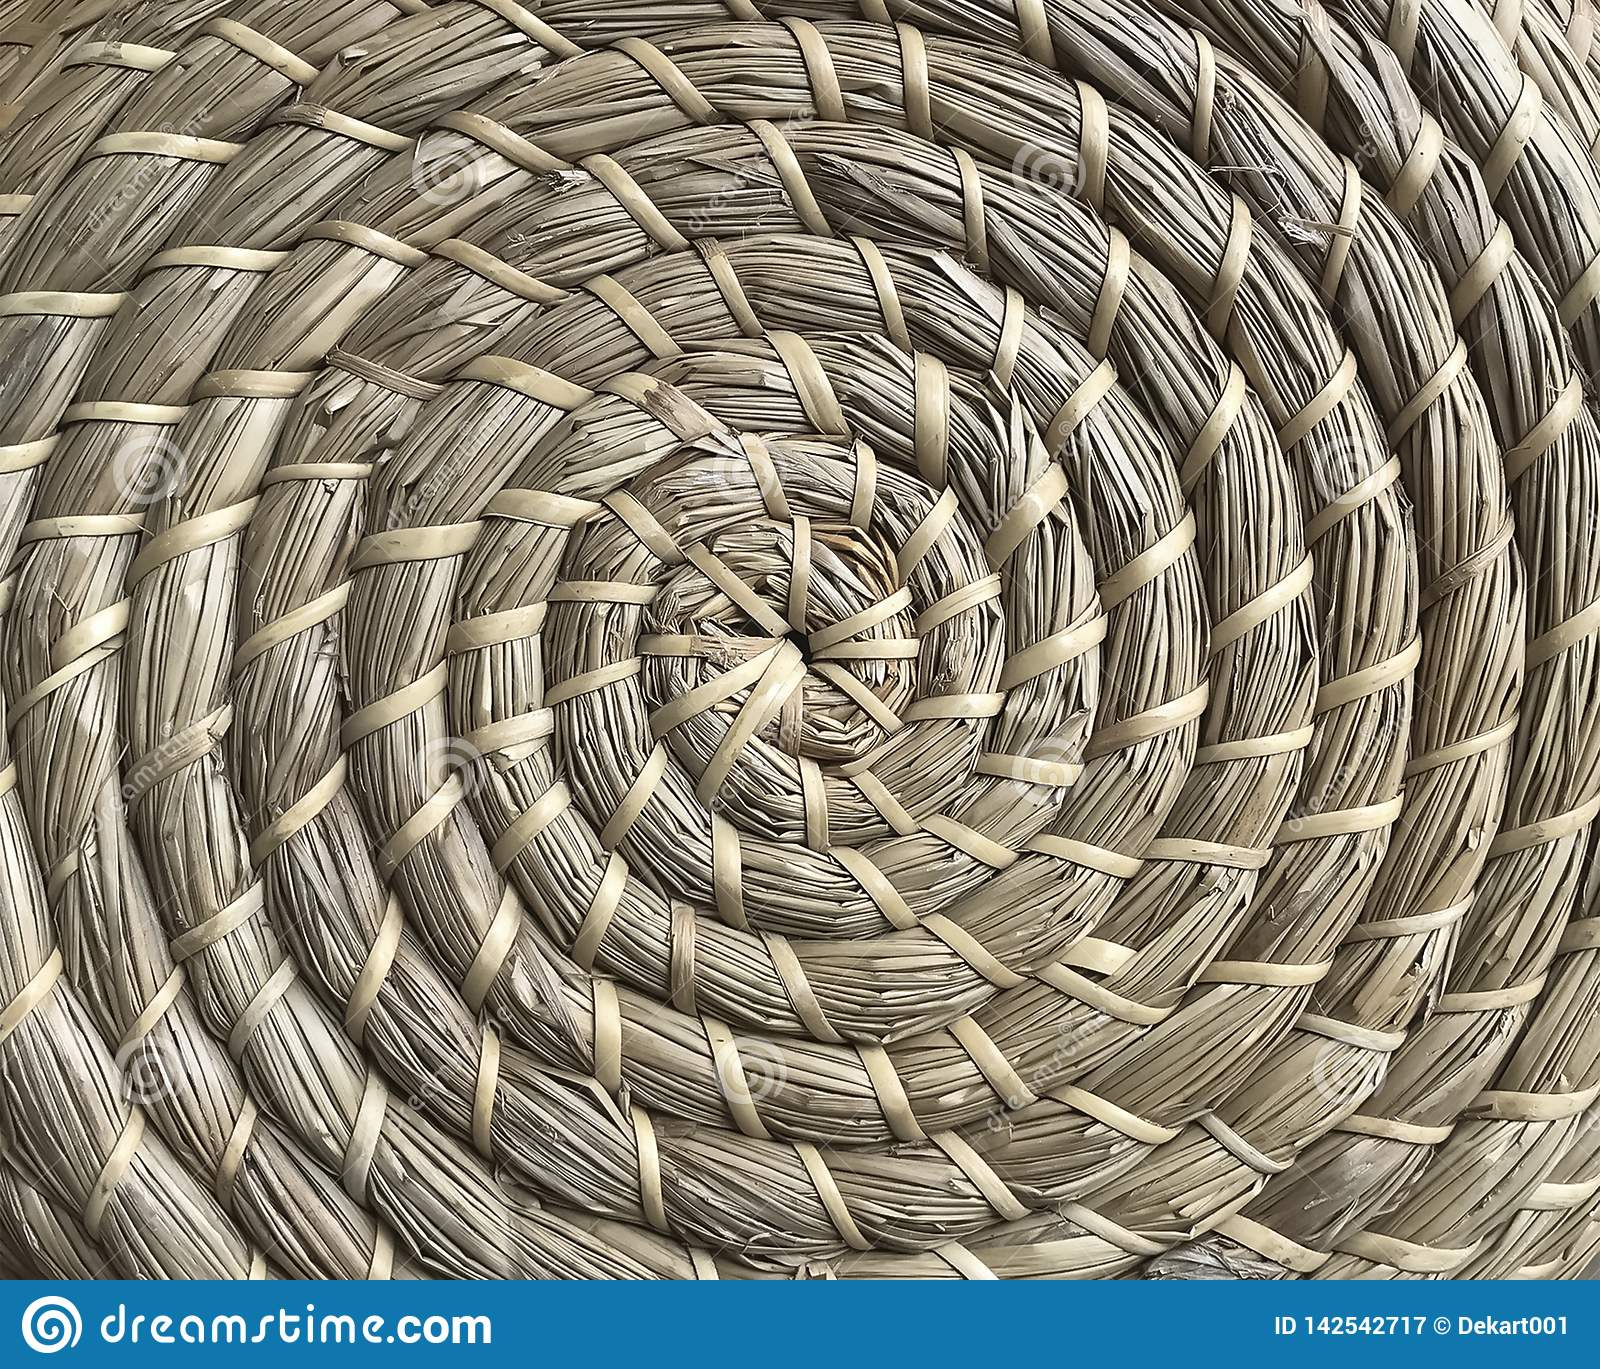 Basketry made of natural fibers in circle style